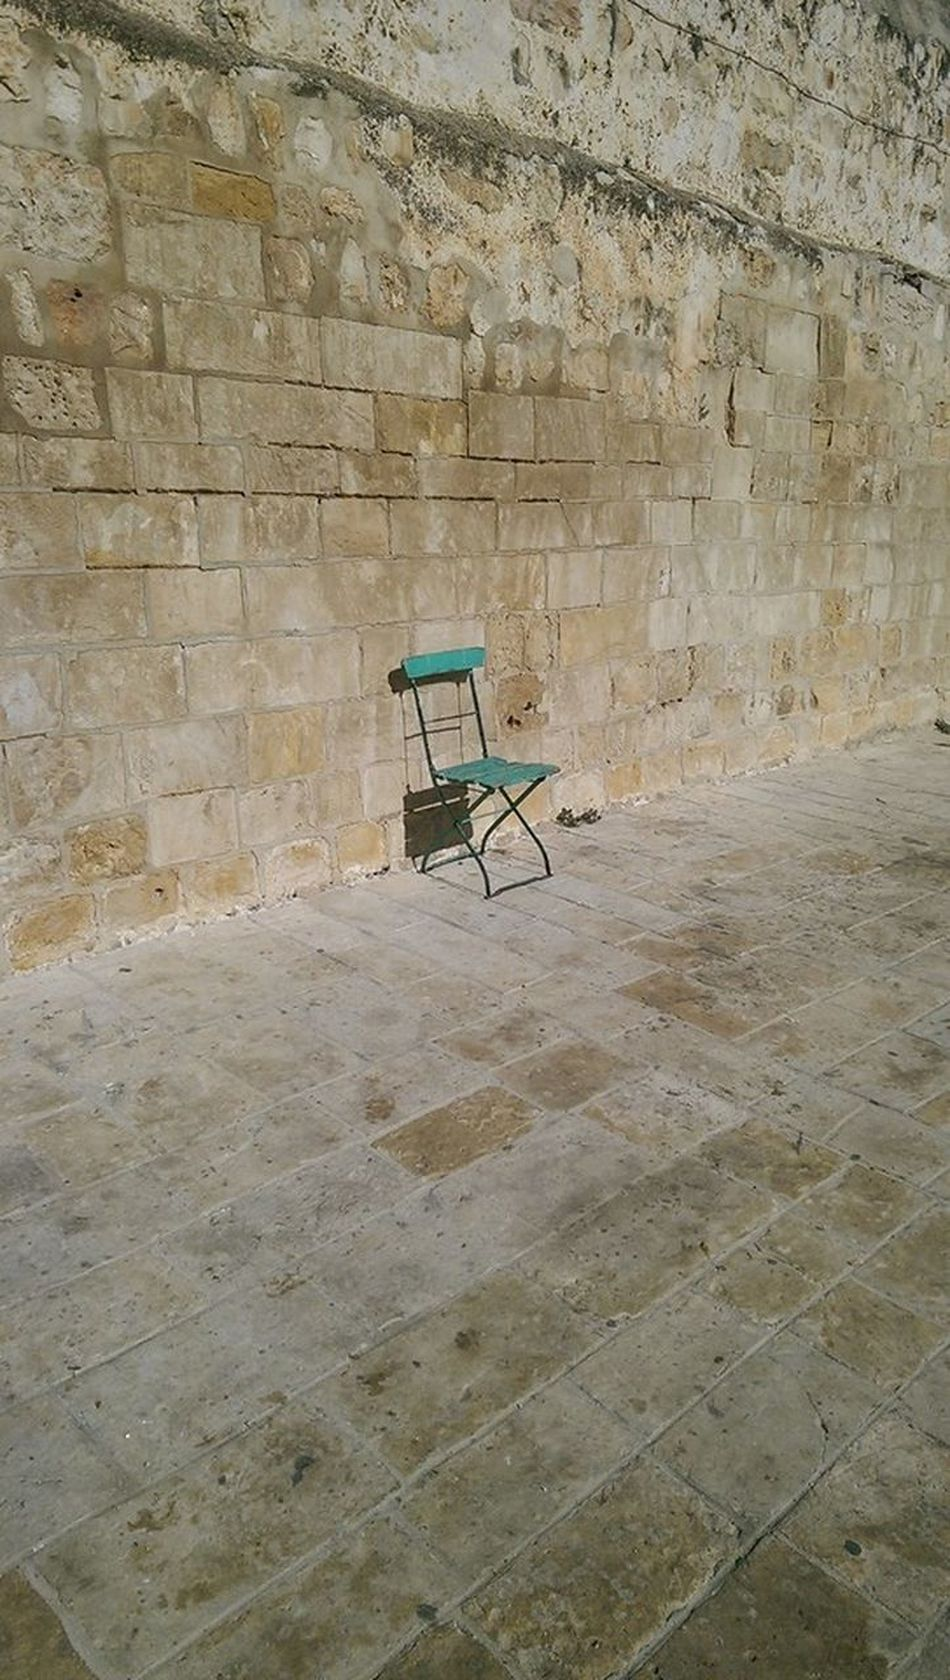 #Chair #israel #jerusalem #OldTown #Stone #streetphotography #turquoise #wall